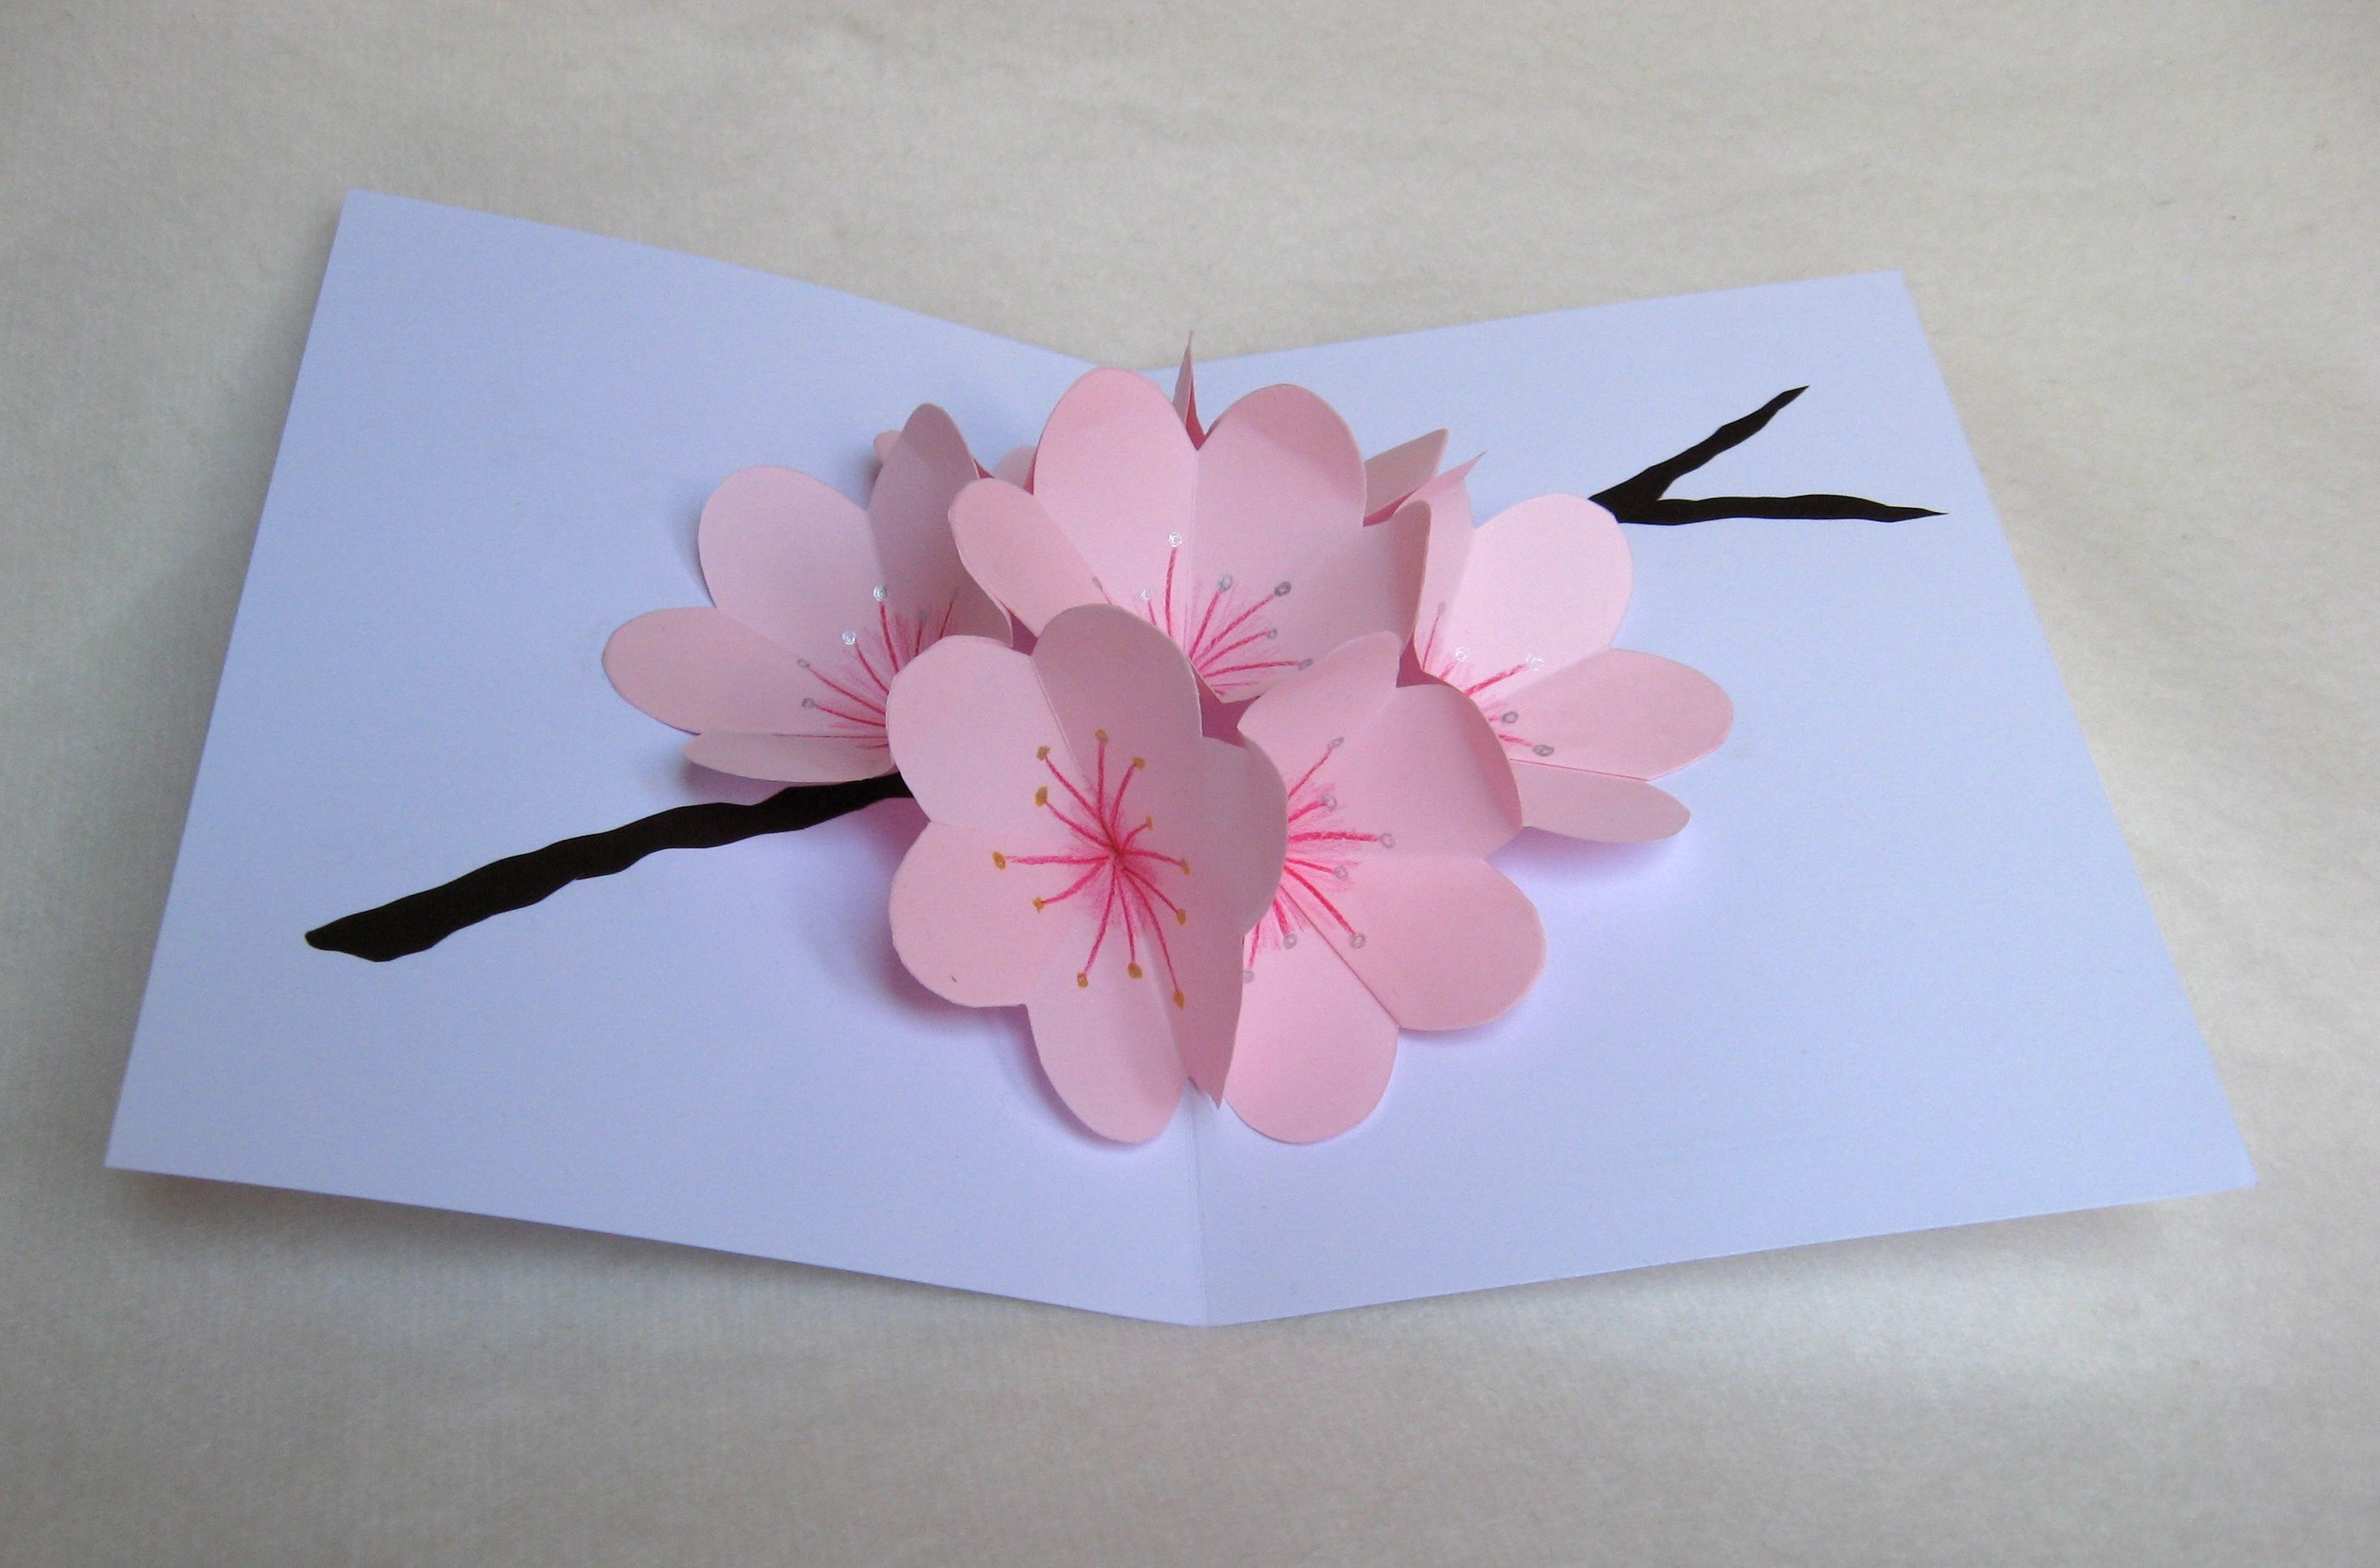 Flower Pop Up Cards On Behance Pop Up Flower Cards Pop Up Cards Birthday Card Pop Up